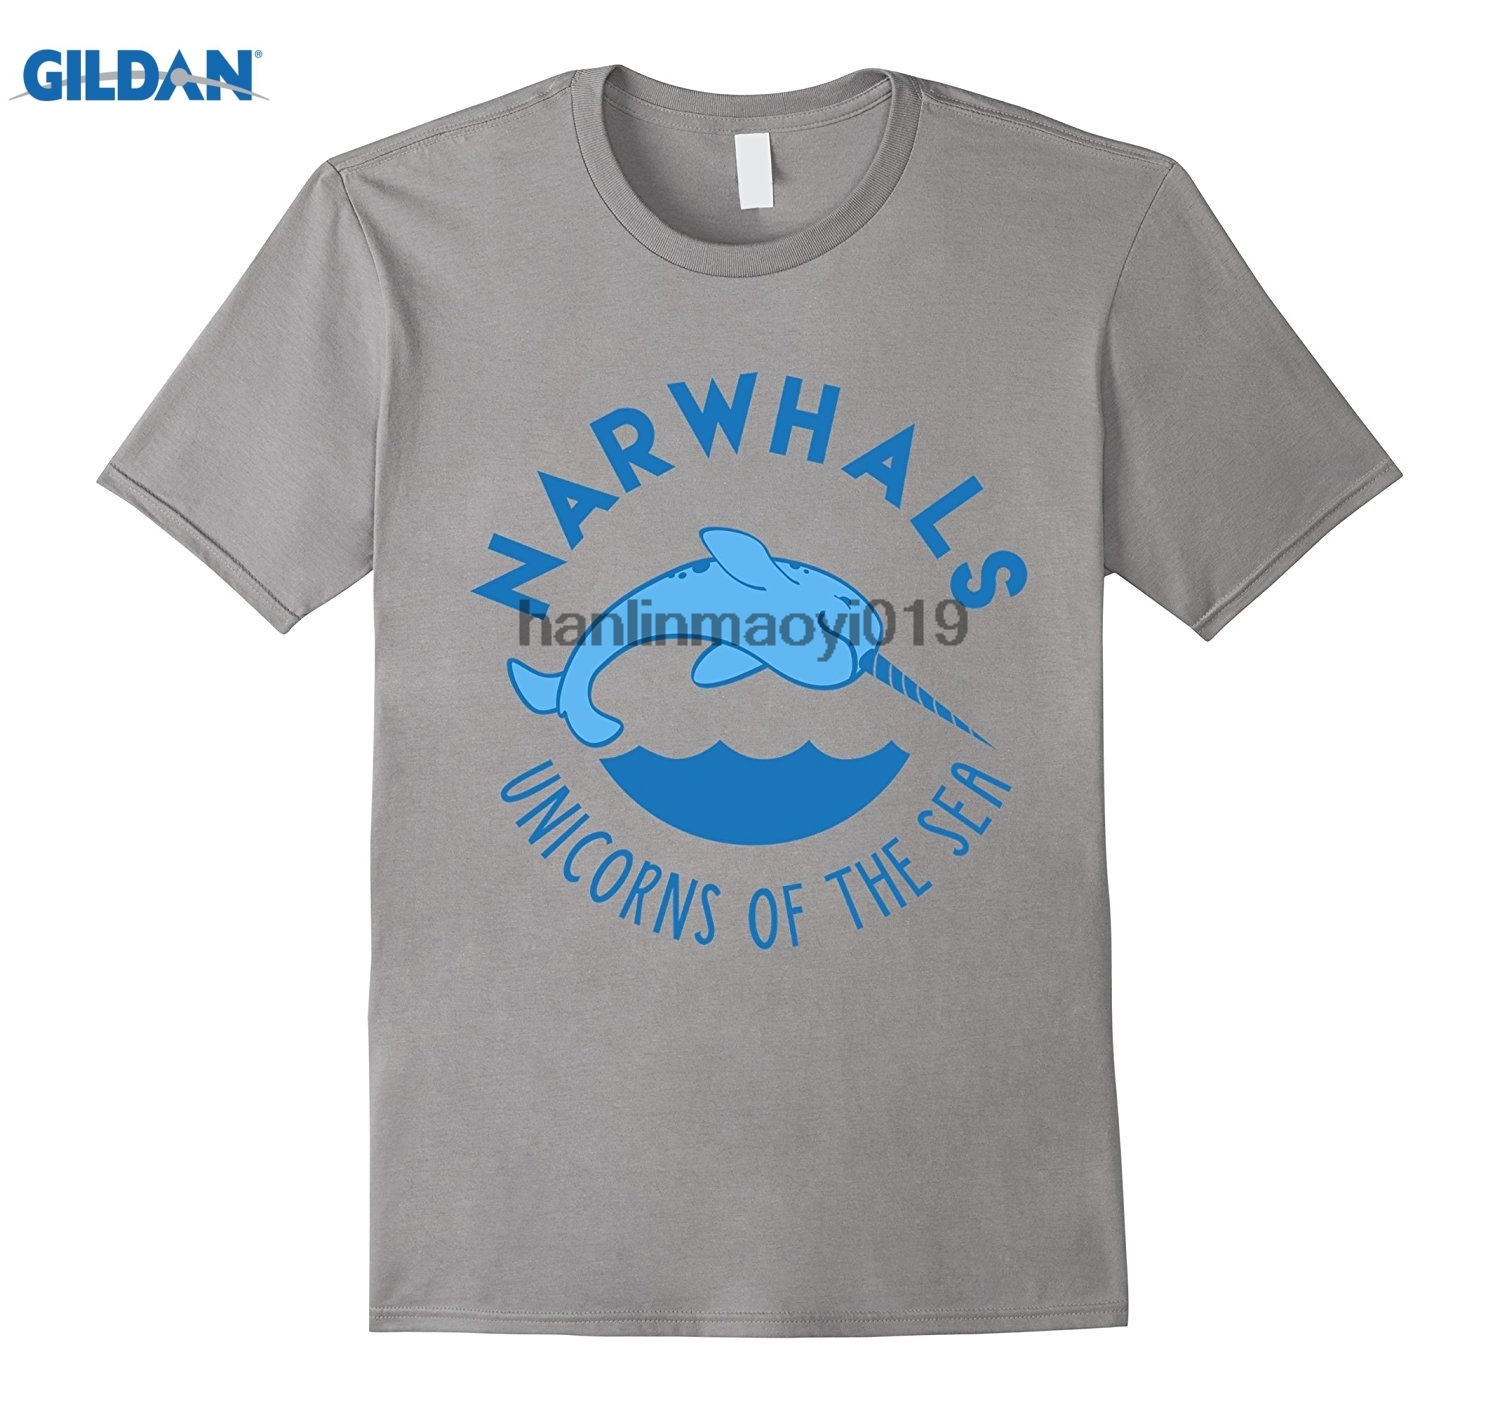 GILDAN Narwhals Unicorns of the Sea Shirt Funny Nerdy Gift T